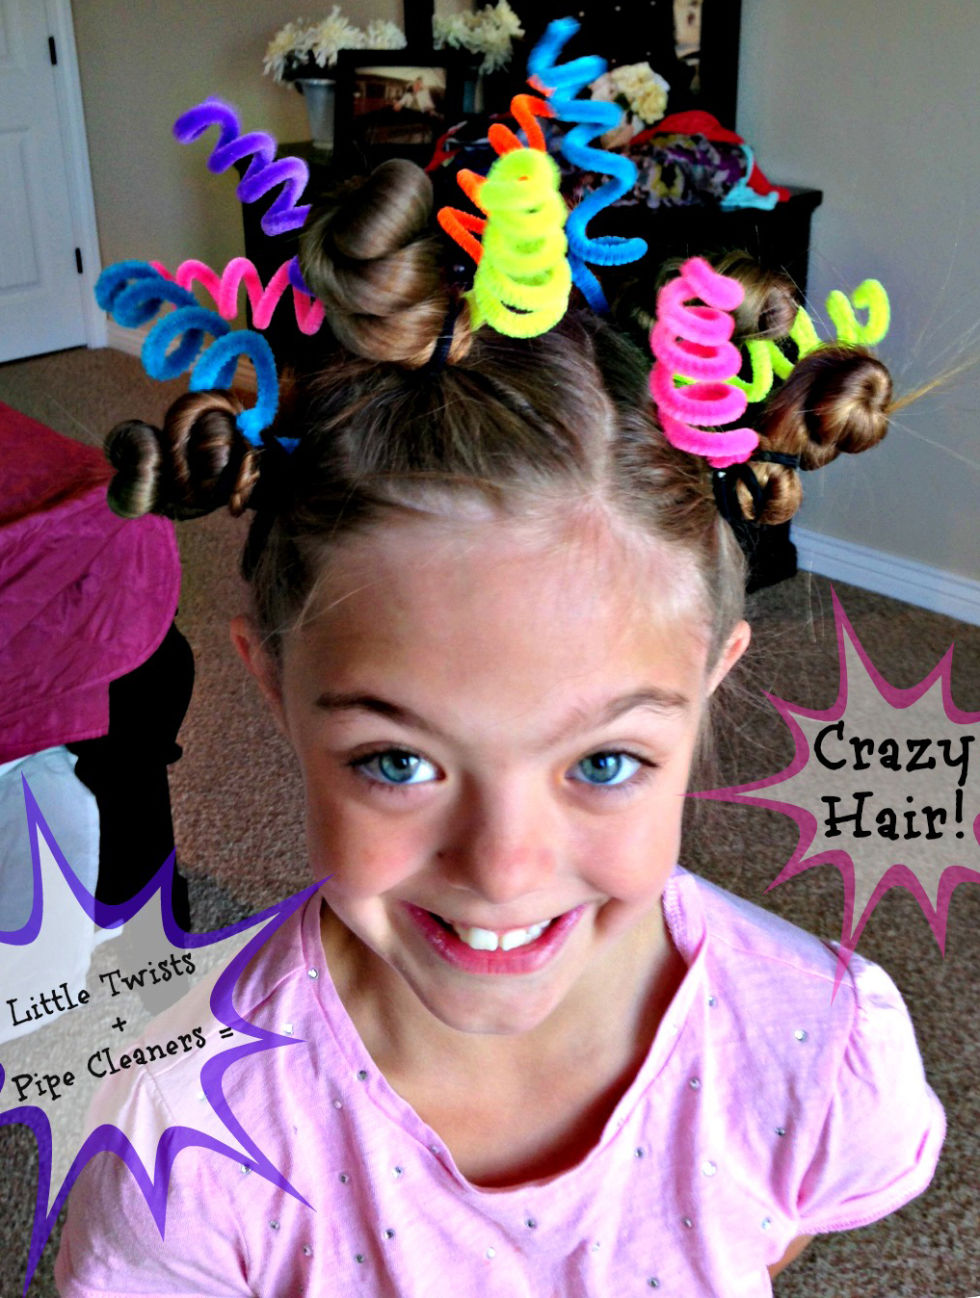 crazy hair day ideas - wacky hair styles